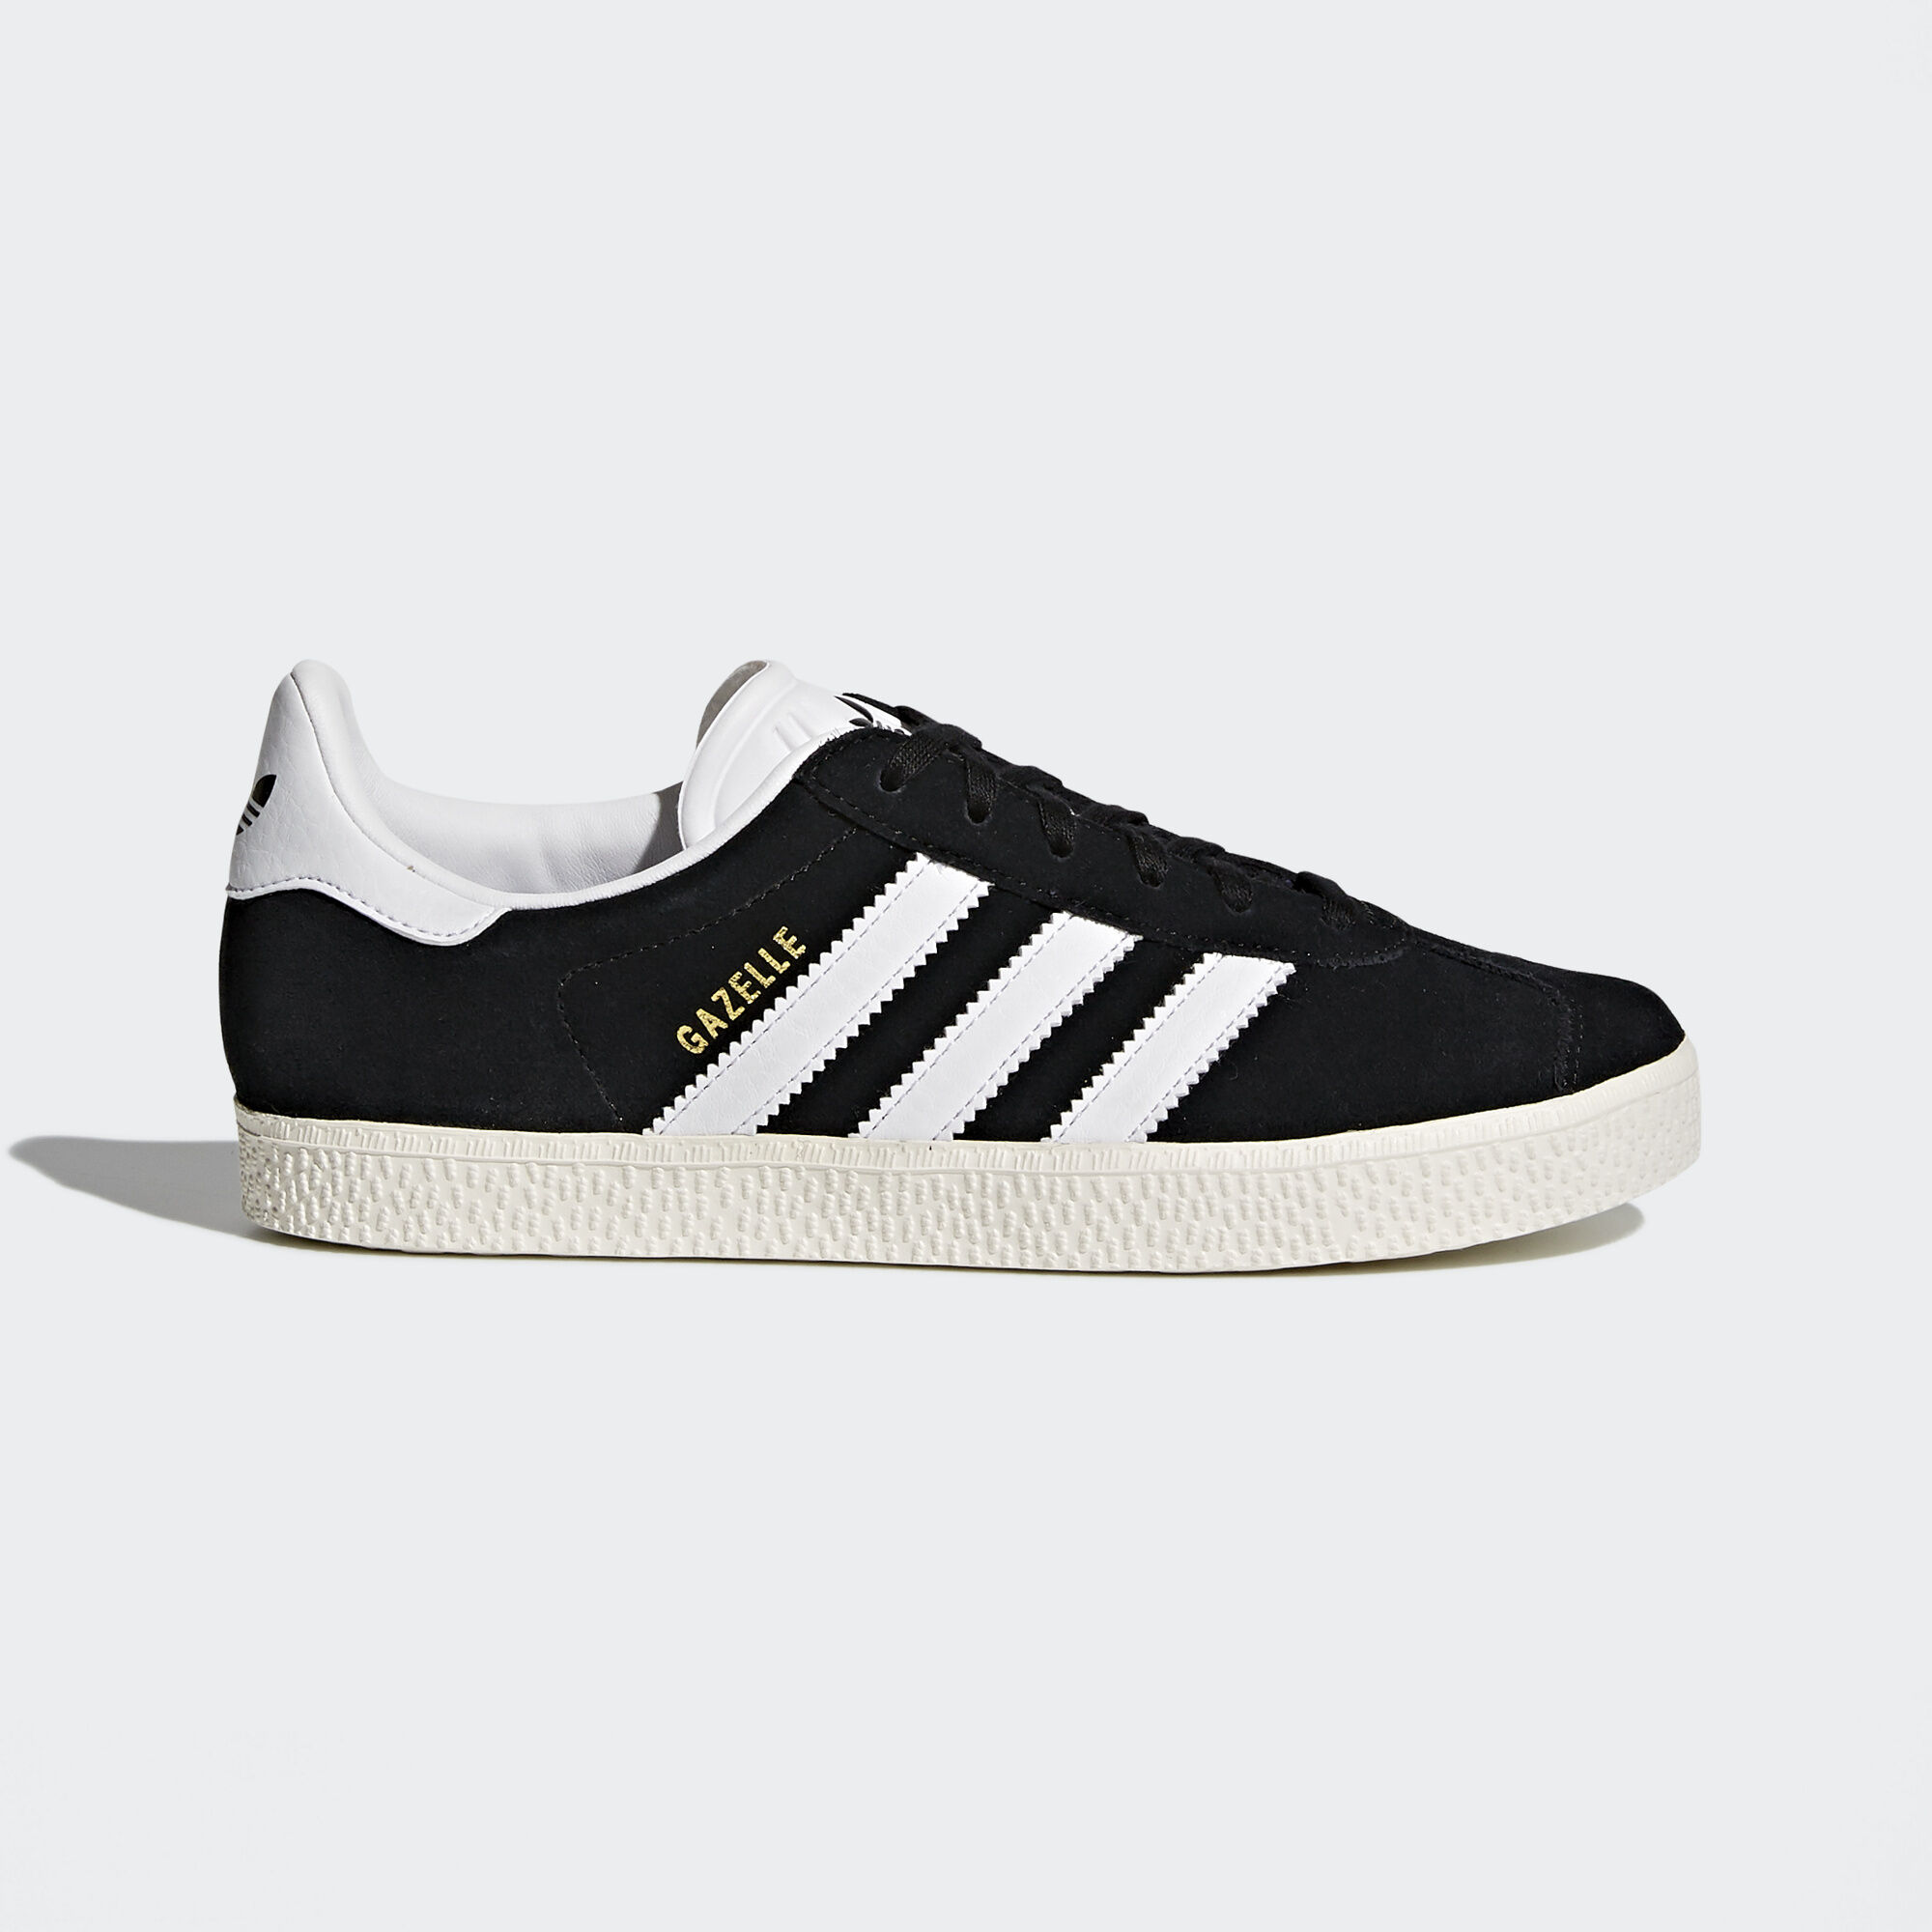 Adidas Shoes For Girls 2017 Black